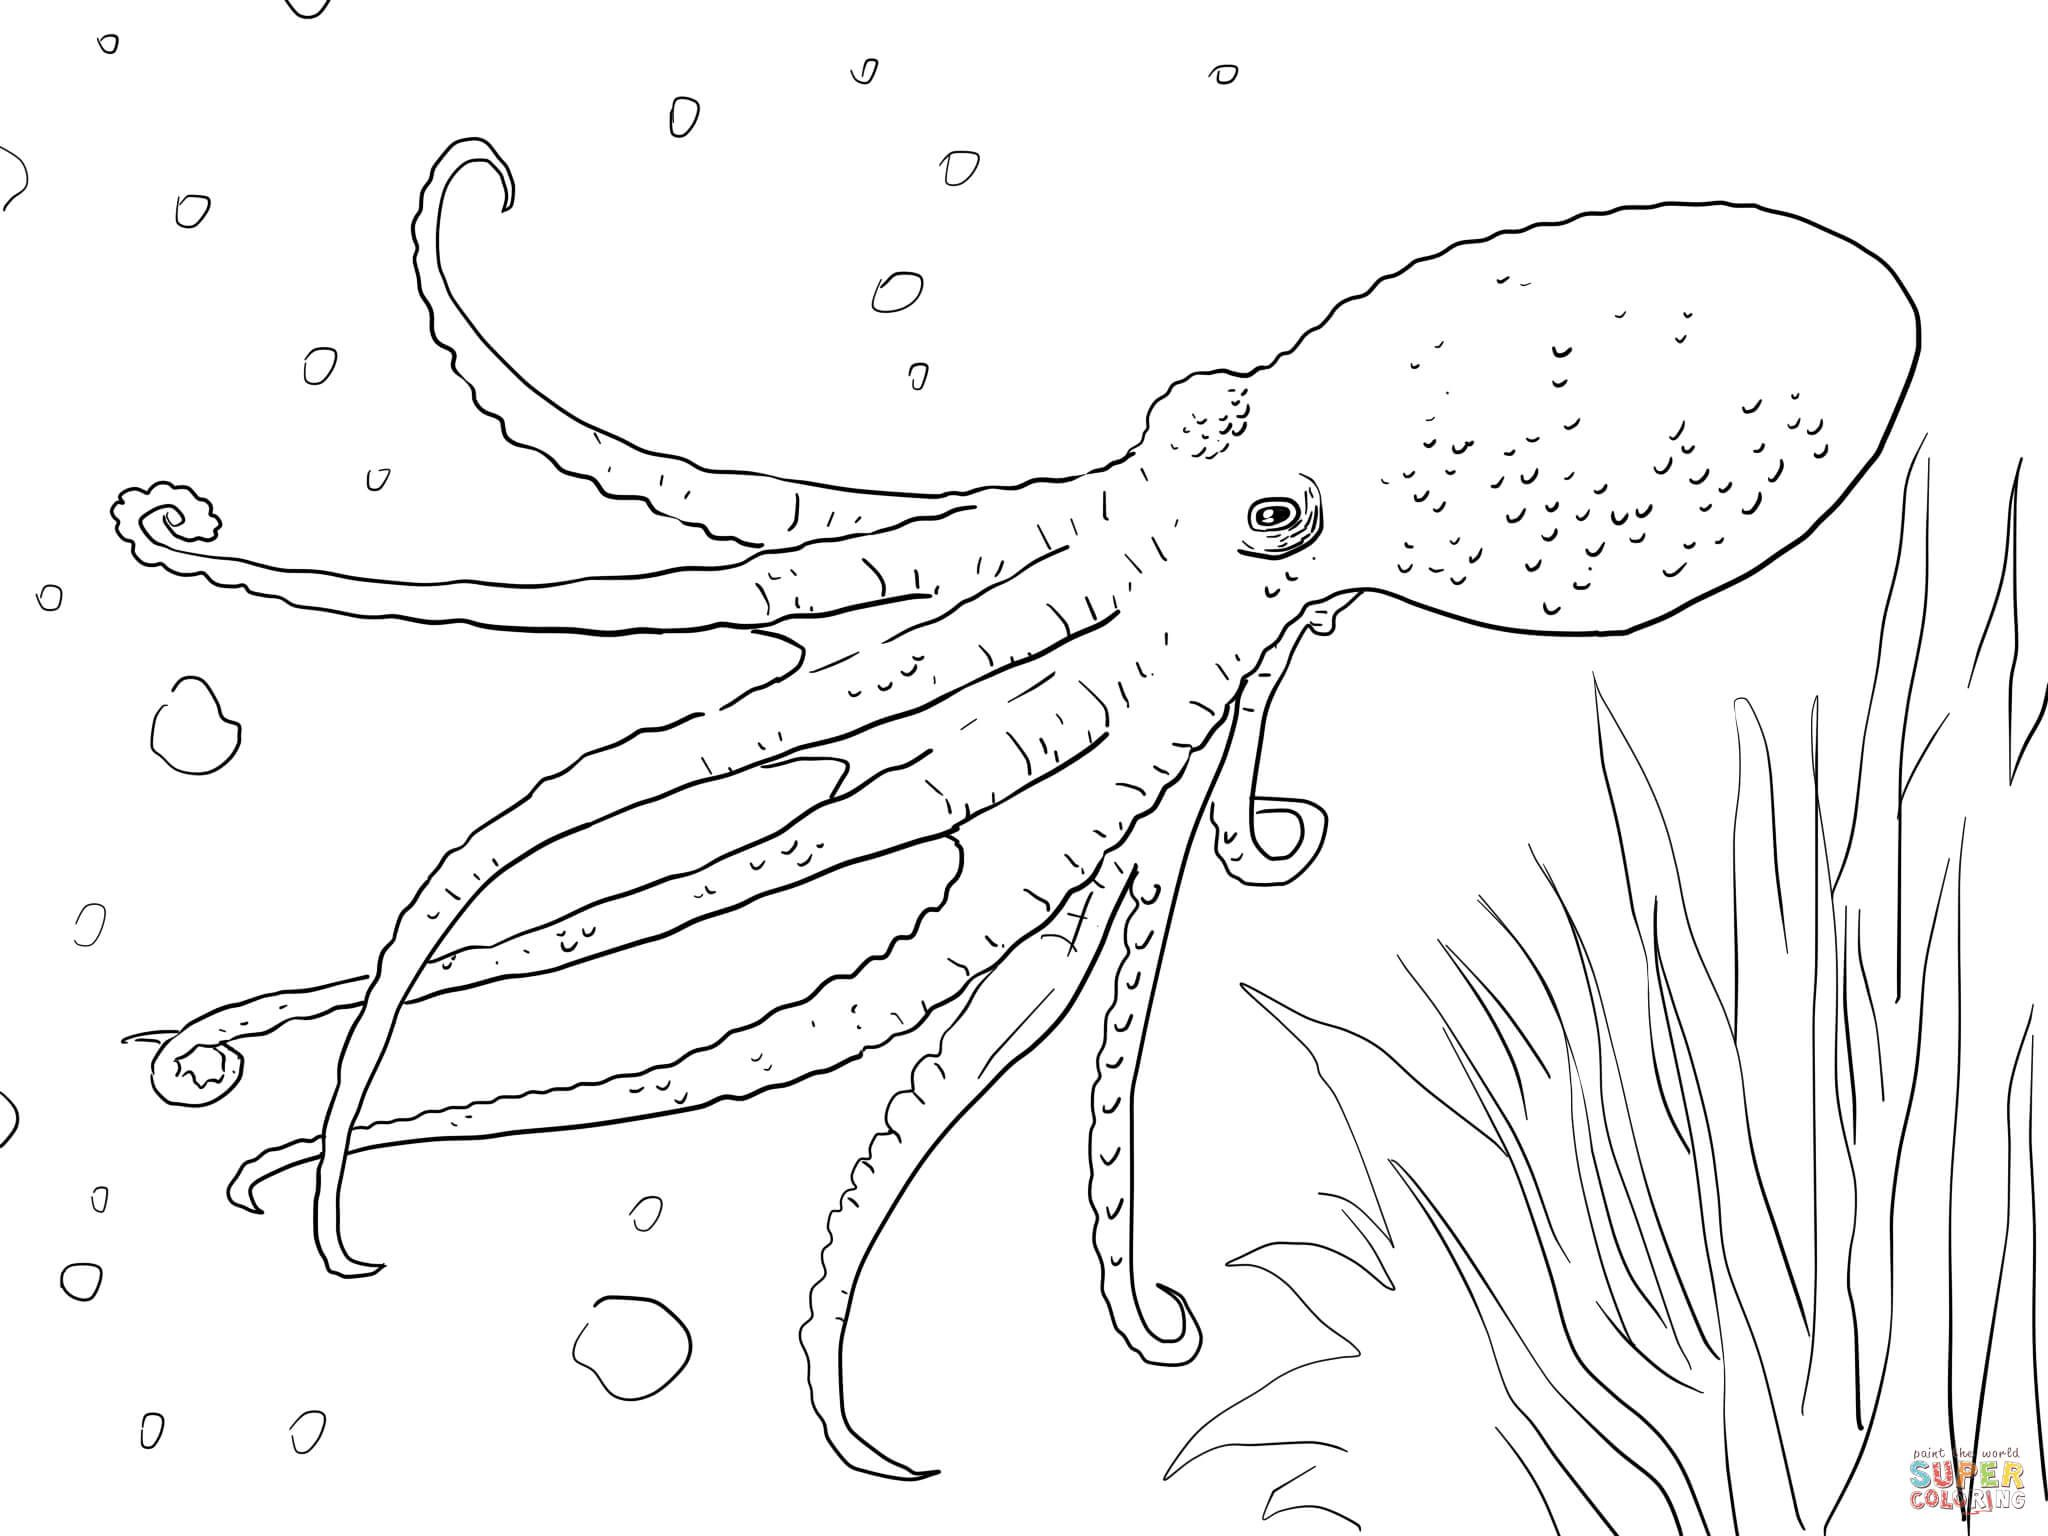 realistic octopus coloring page octopus coloring pages kiddo page realistic octopus coloring